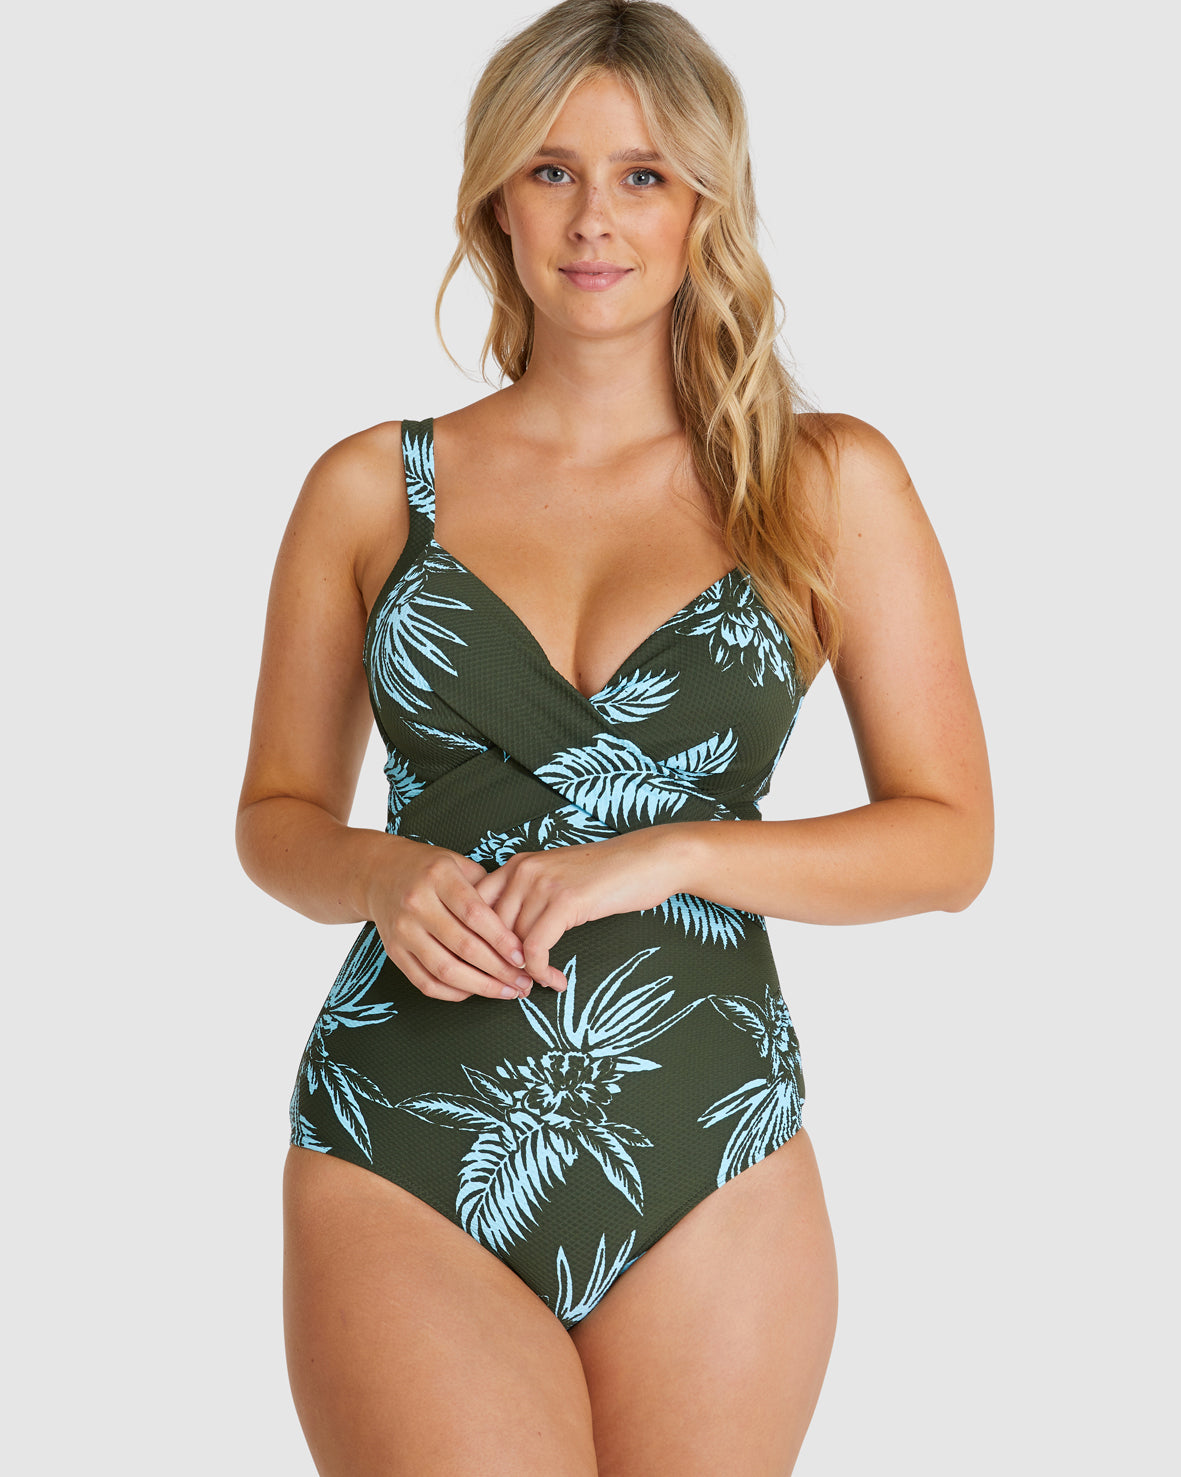 HONDURAS D/DD MOULDED ONE PIECE